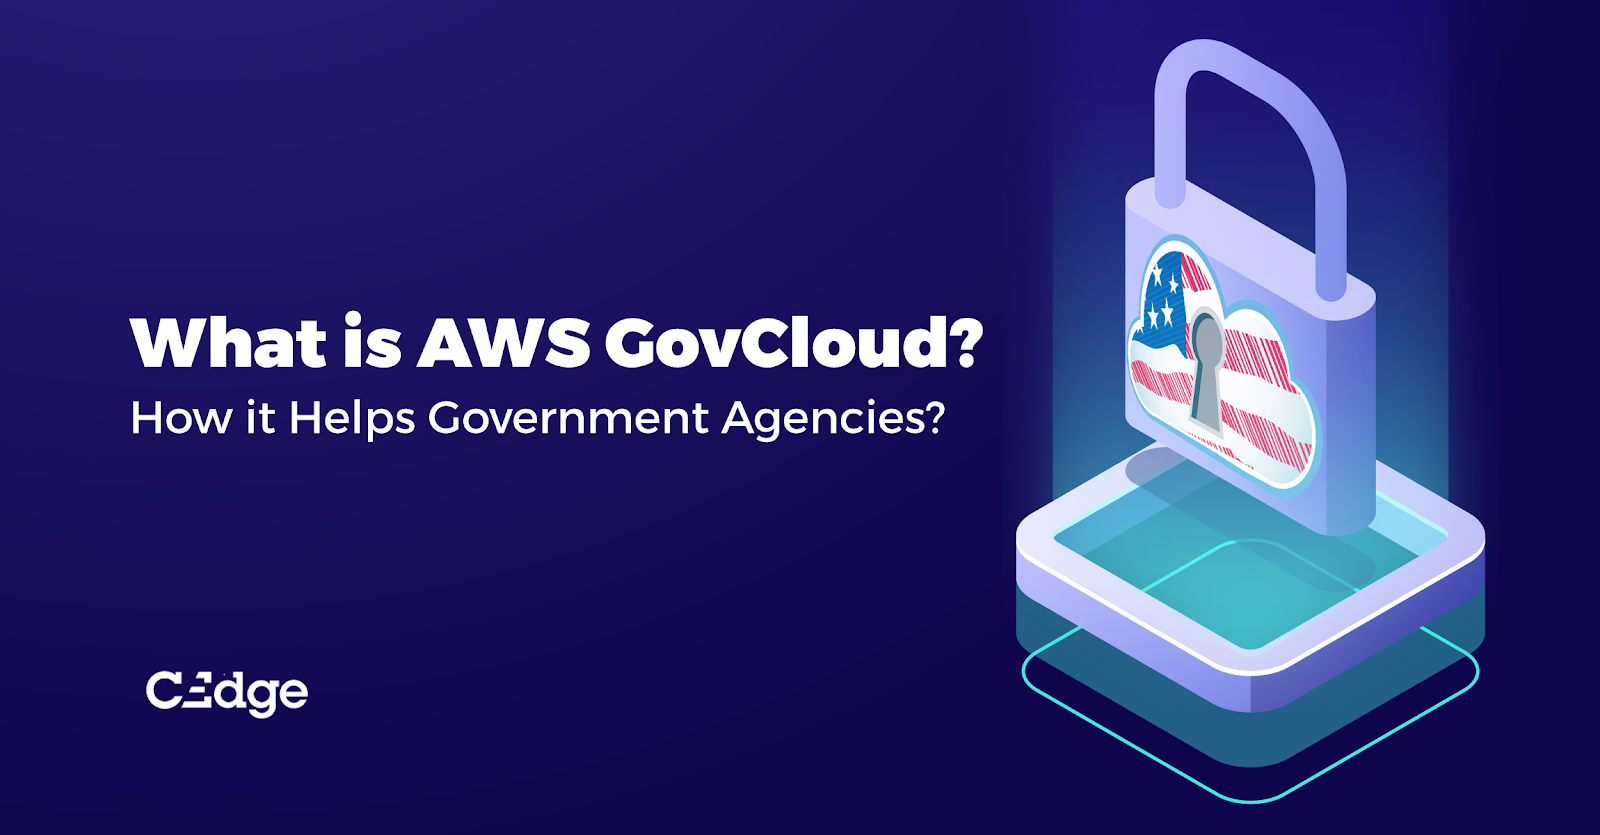 What is AWS GovCloud and how does it help Government Agencies?